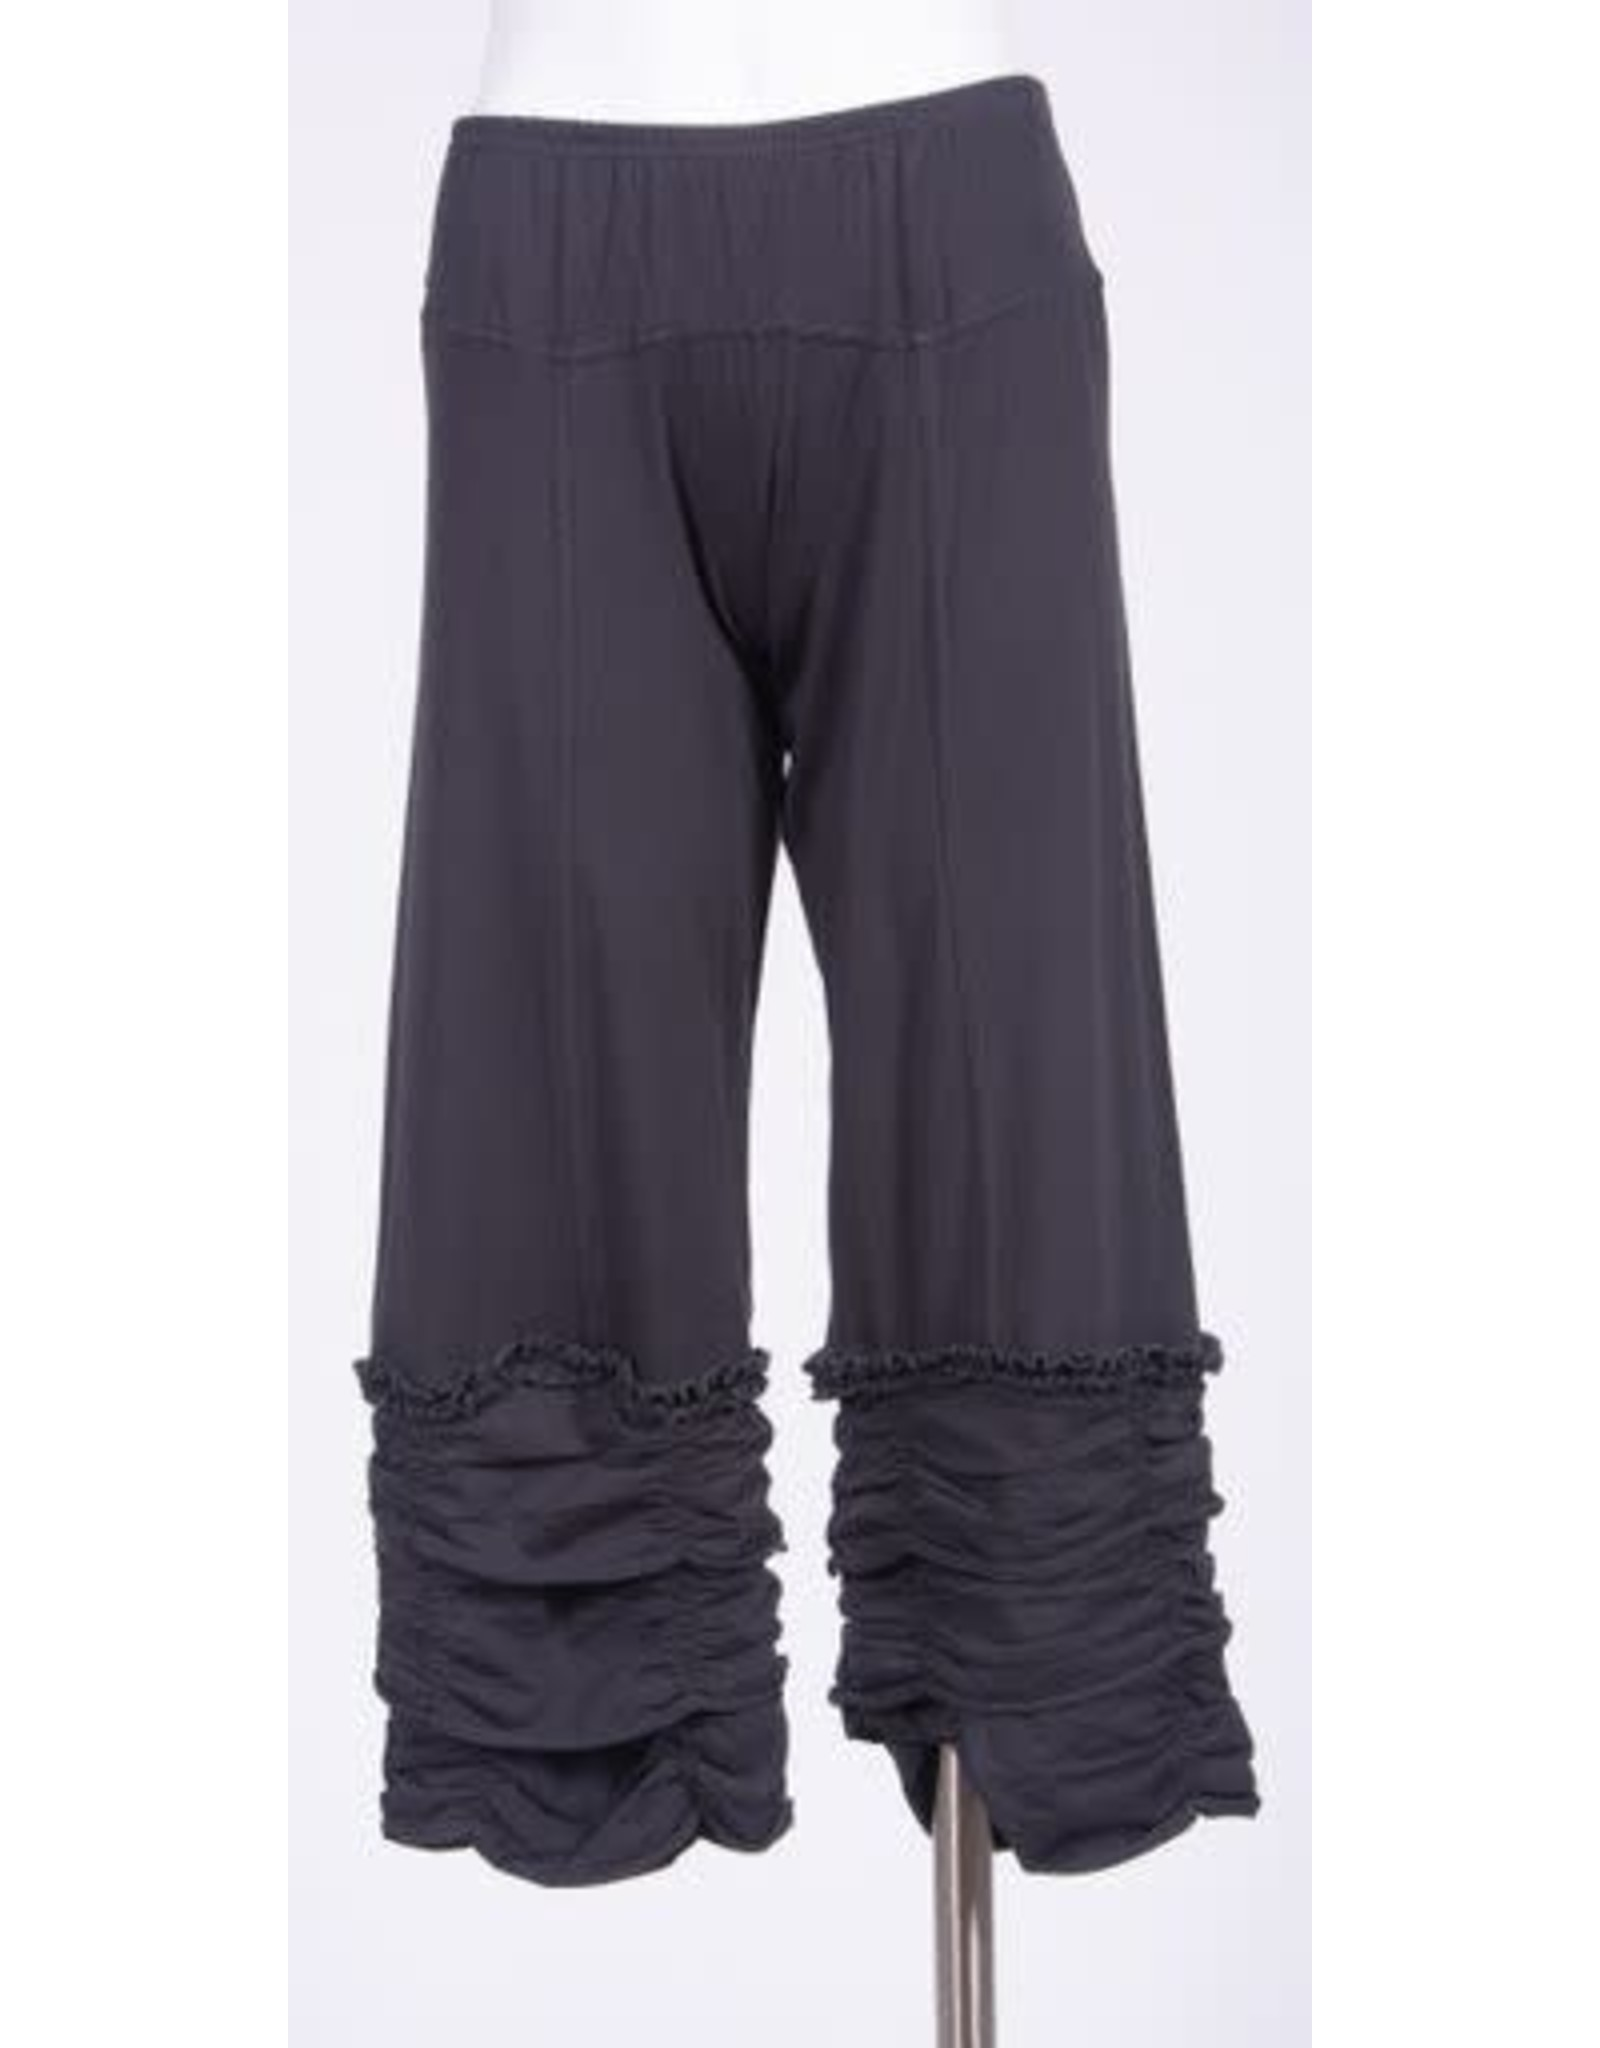 Long Pants with Ruffled Cuff, Nepal